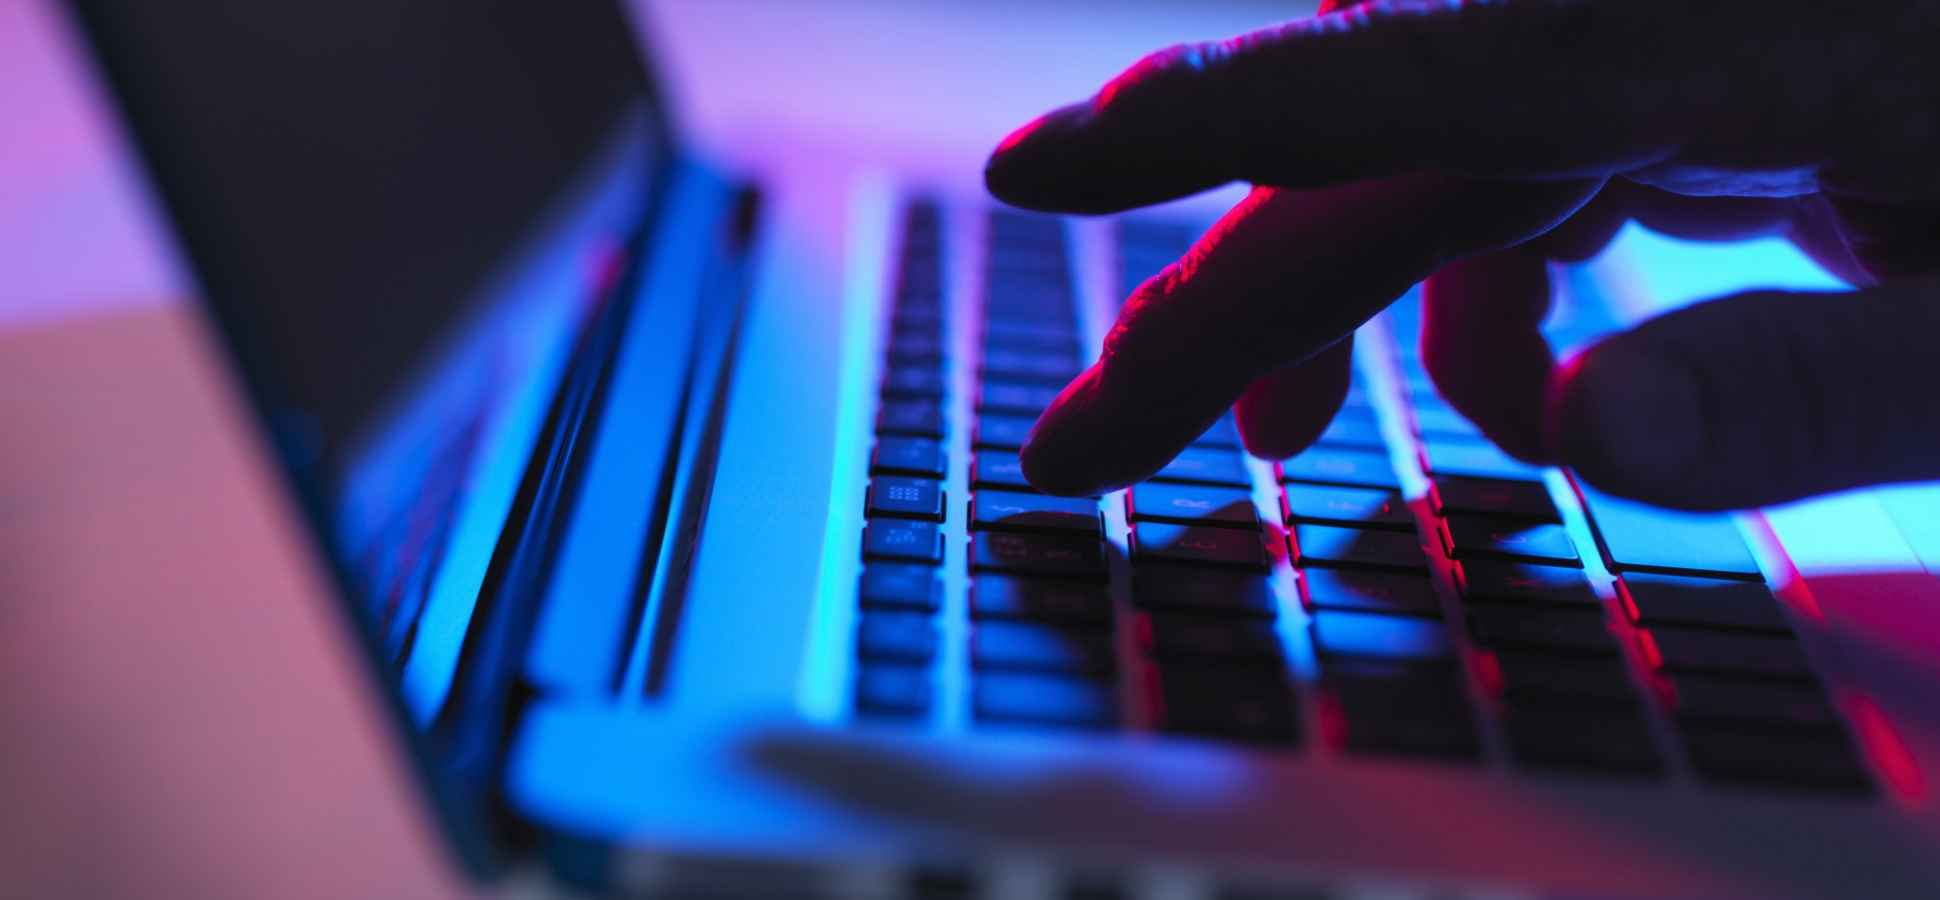 7 Ways to Protect Yourself From Being Hacked